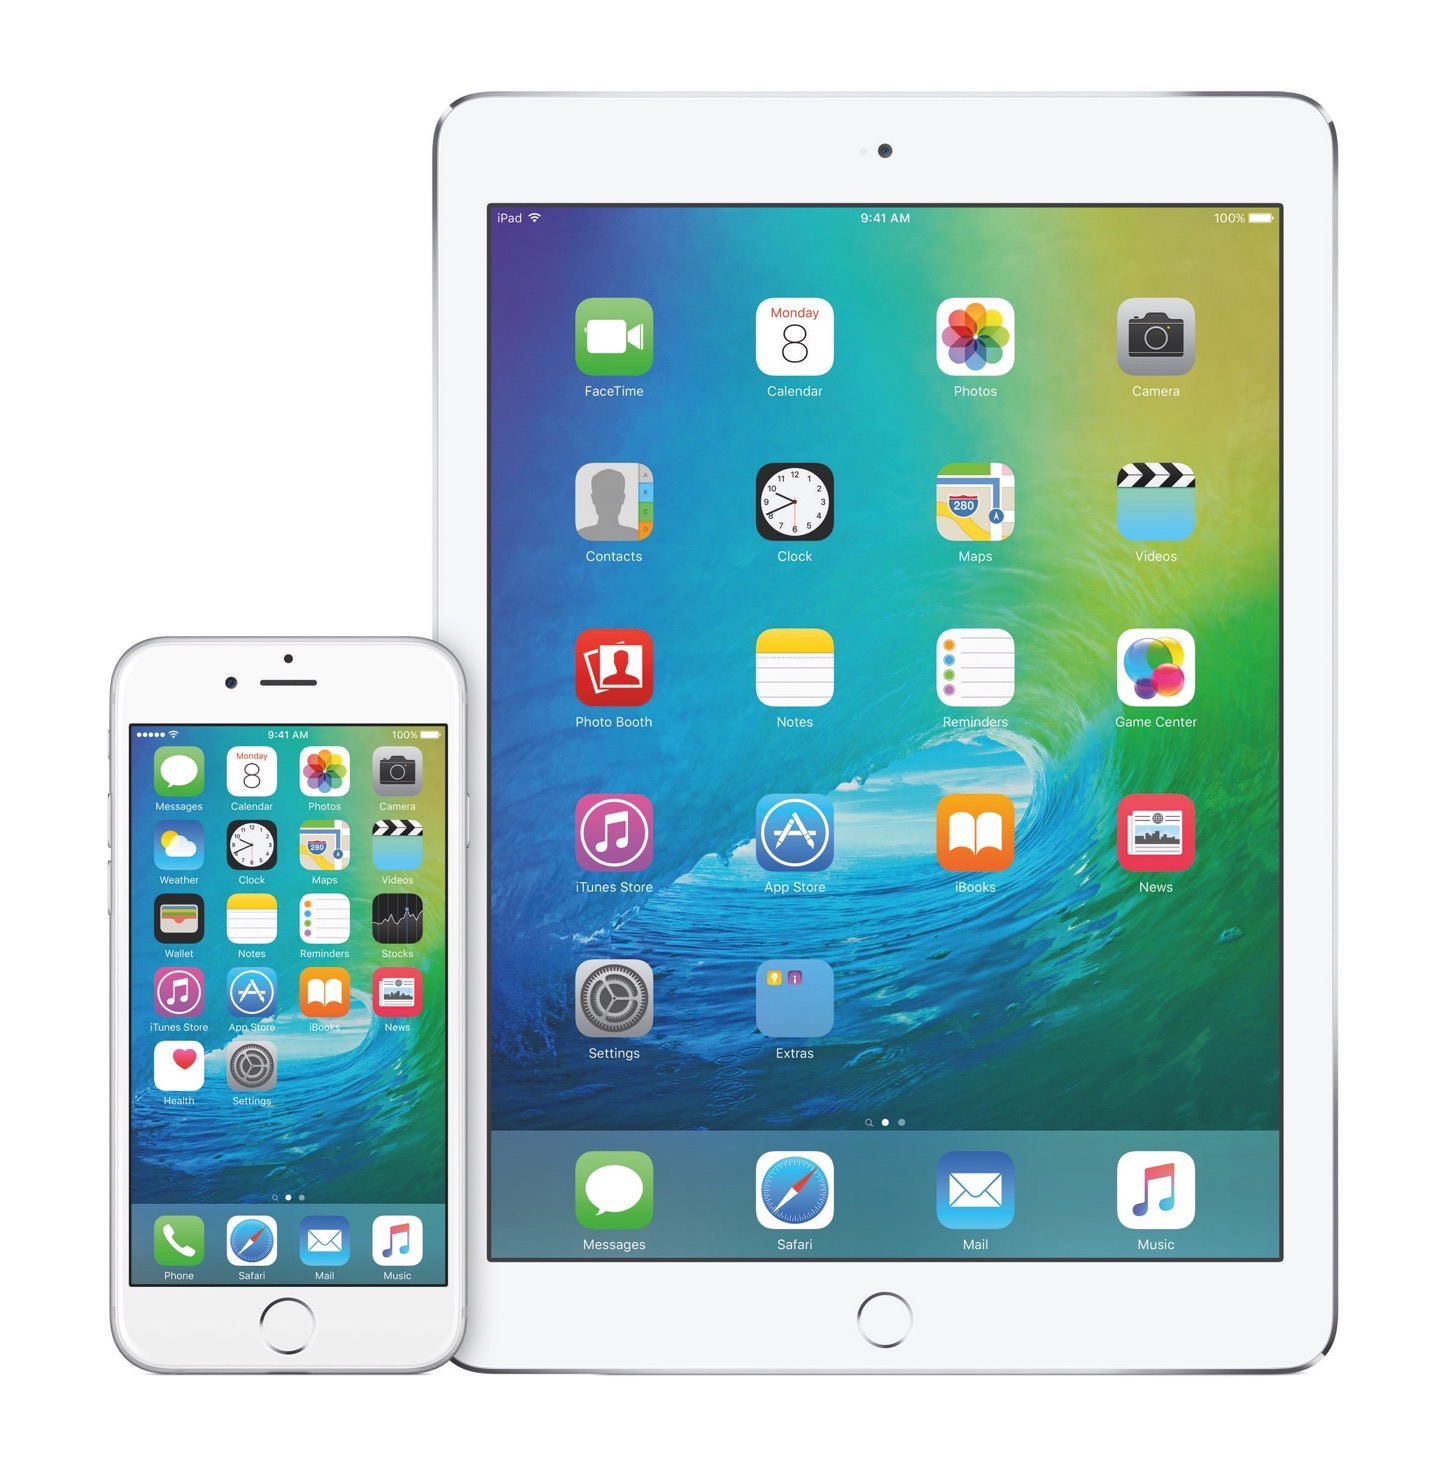 IOS9 iPhone iPad